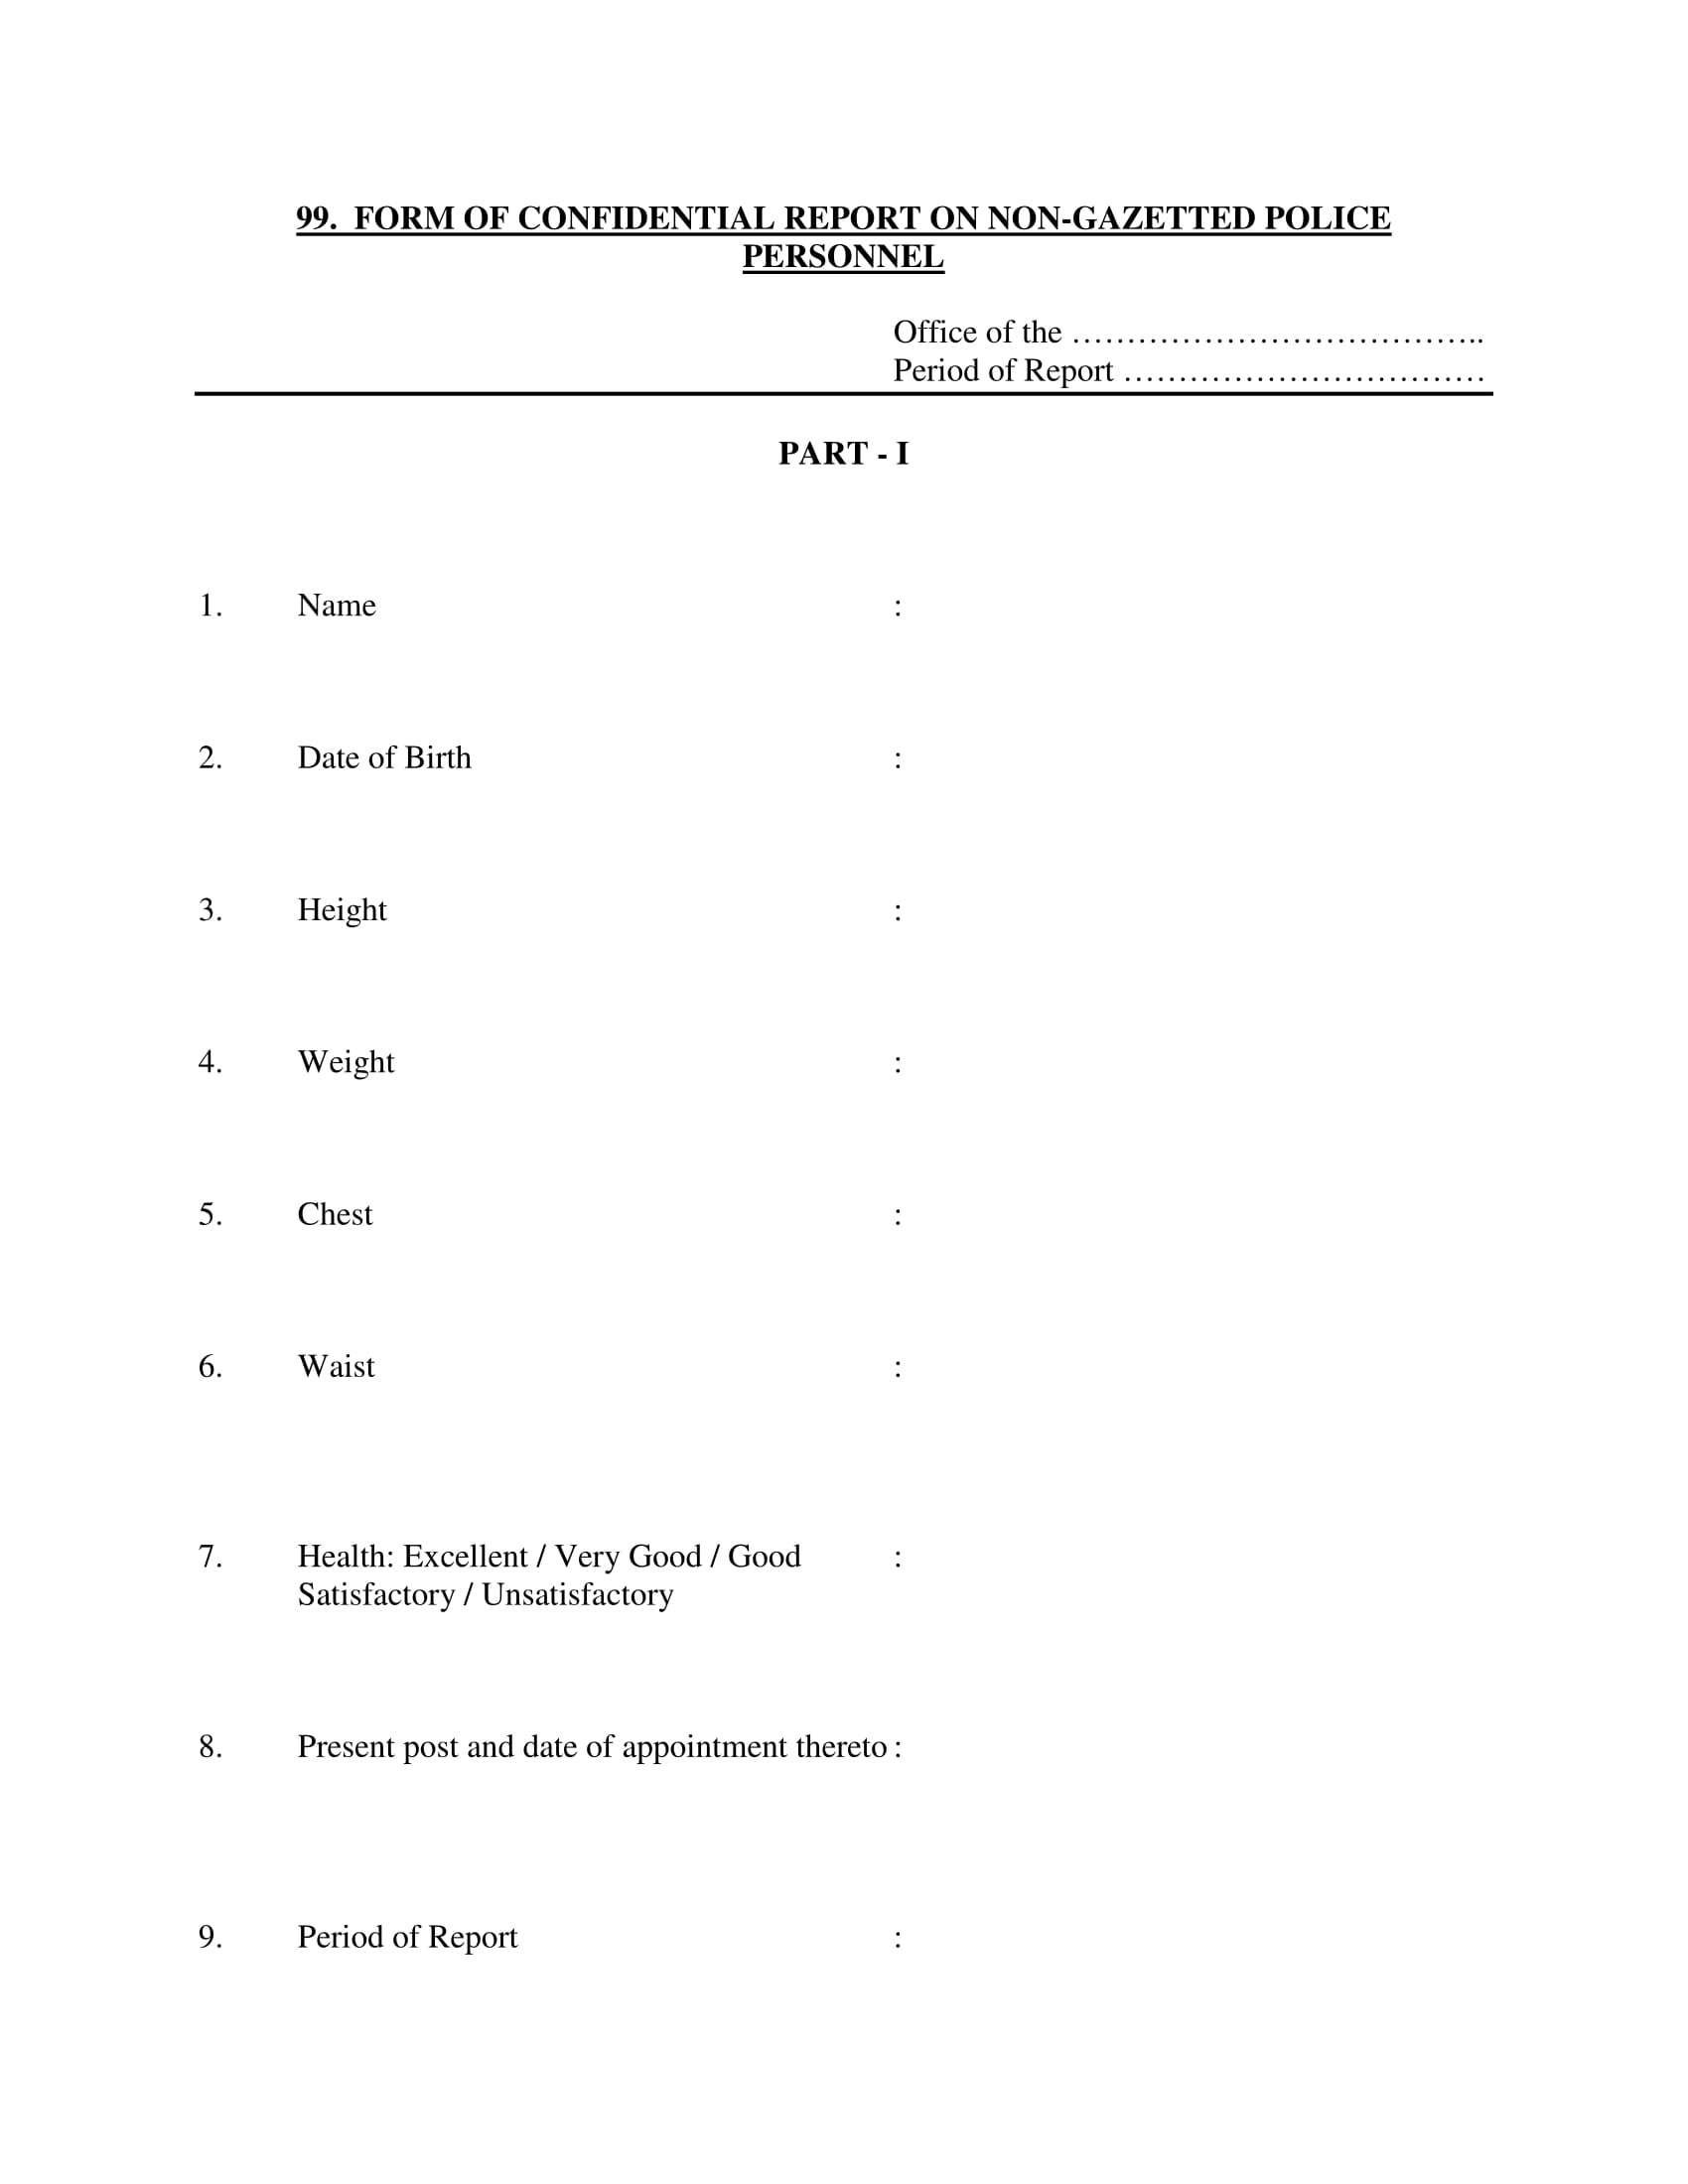 confidential report form for personnel 1